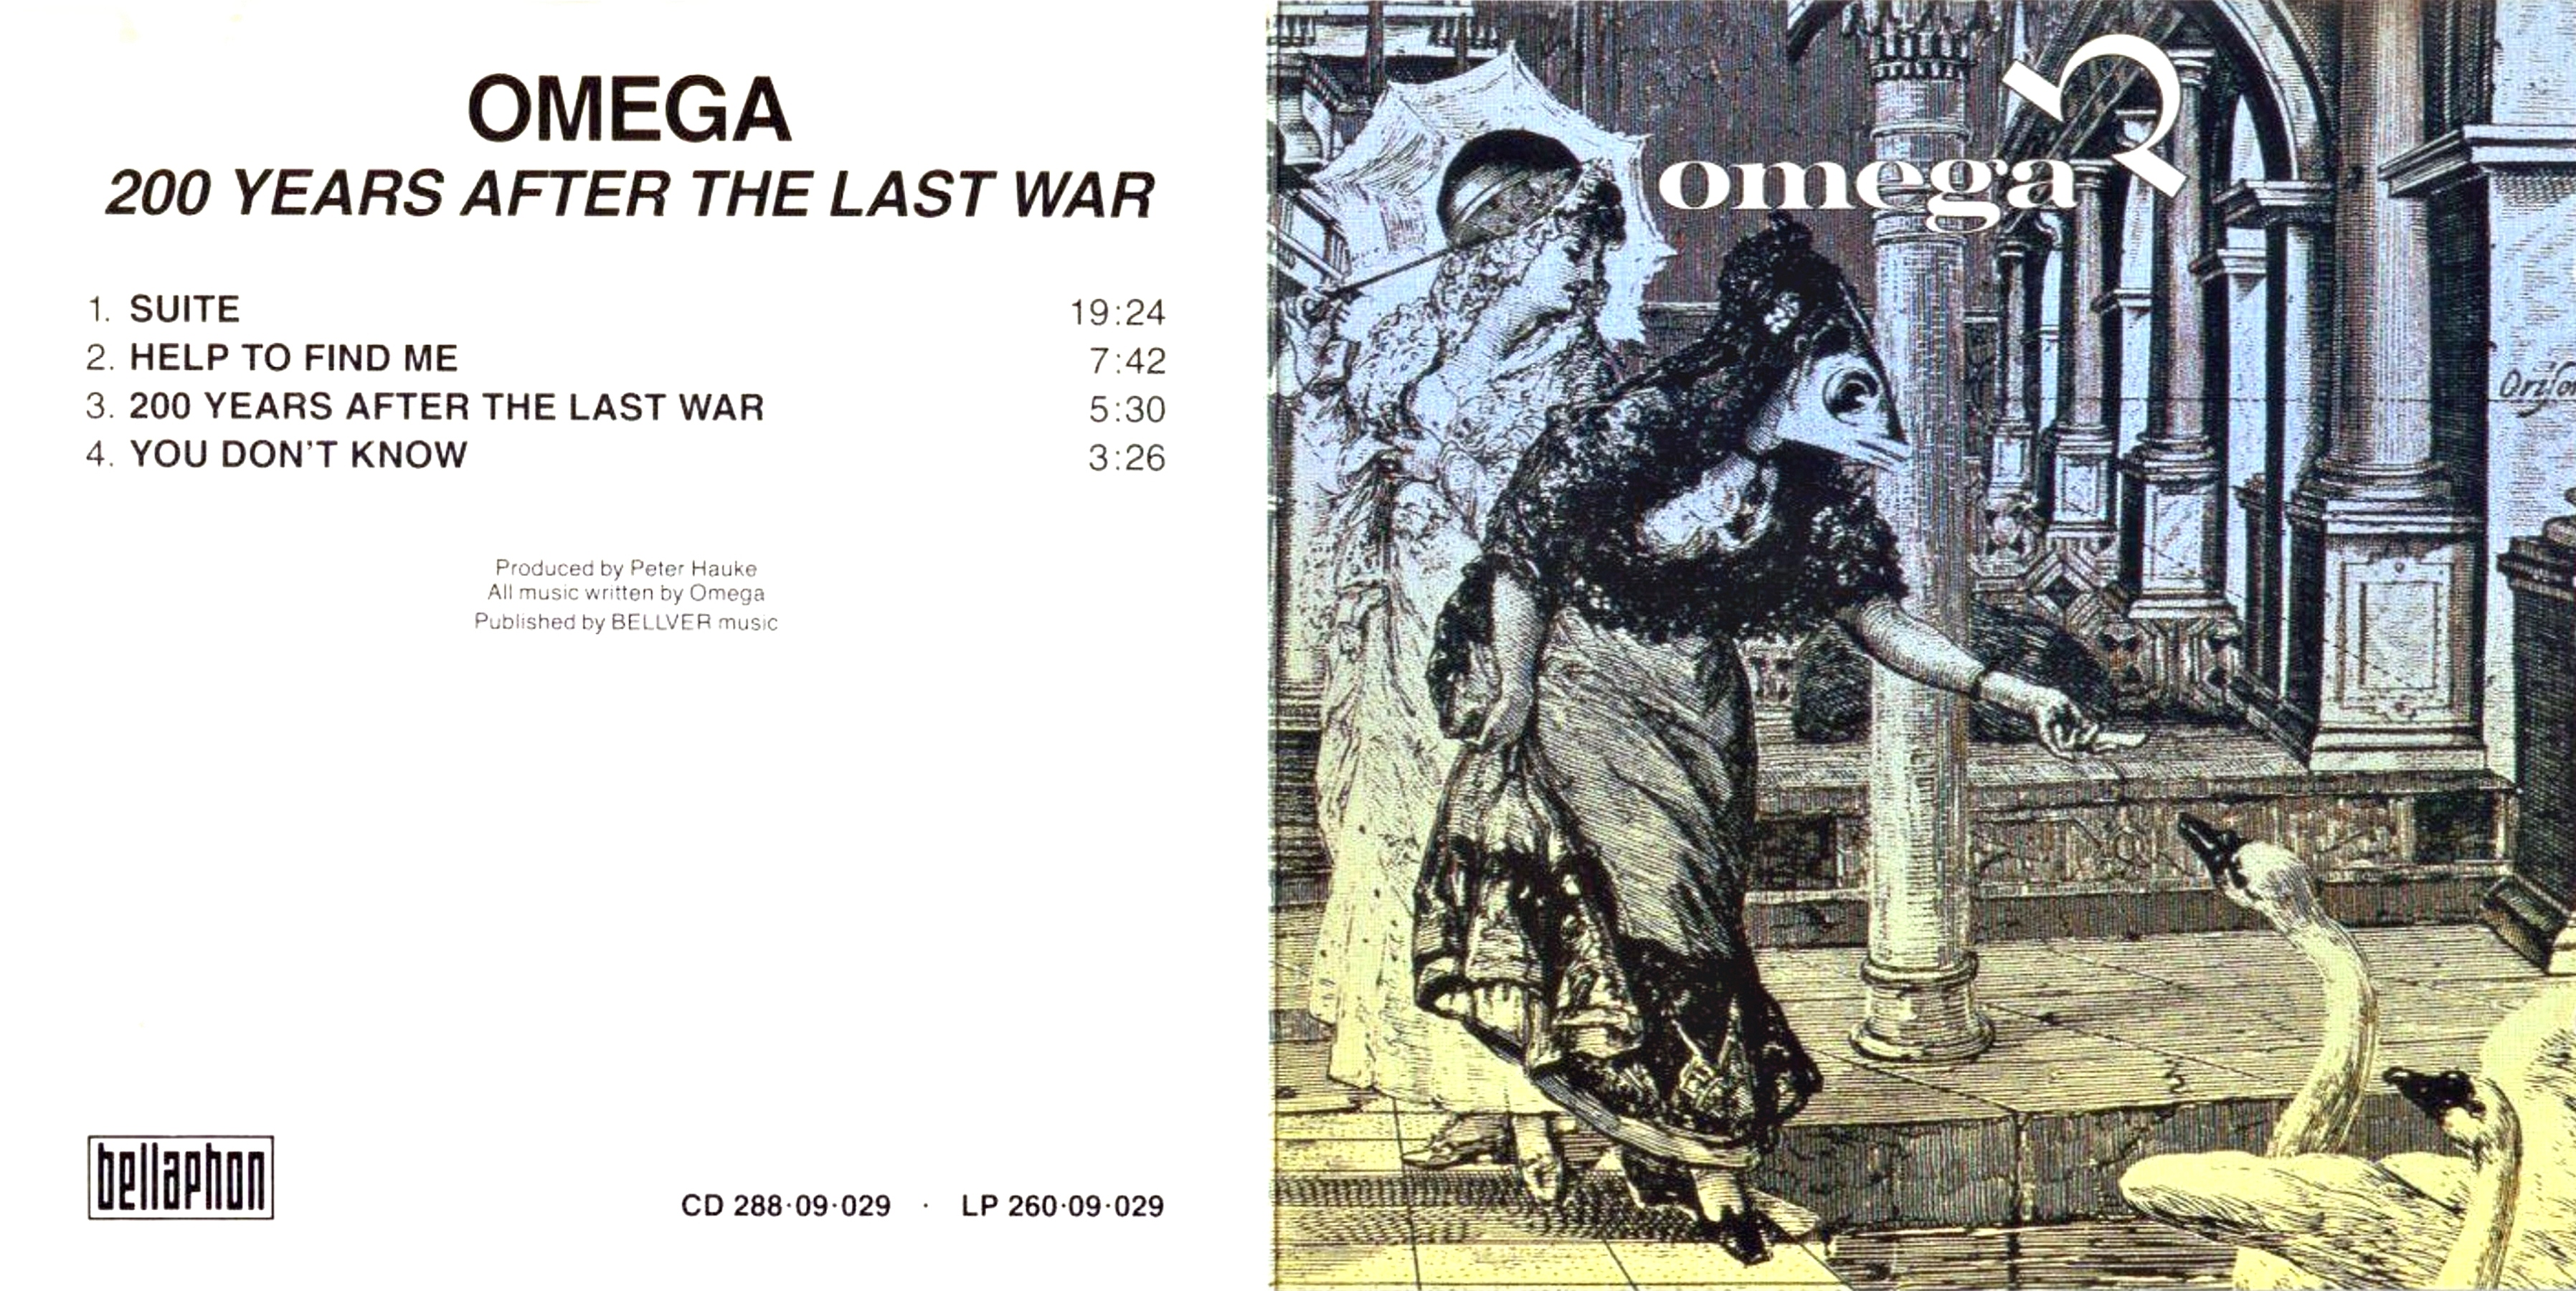 Omega - 200 Years After The Last War